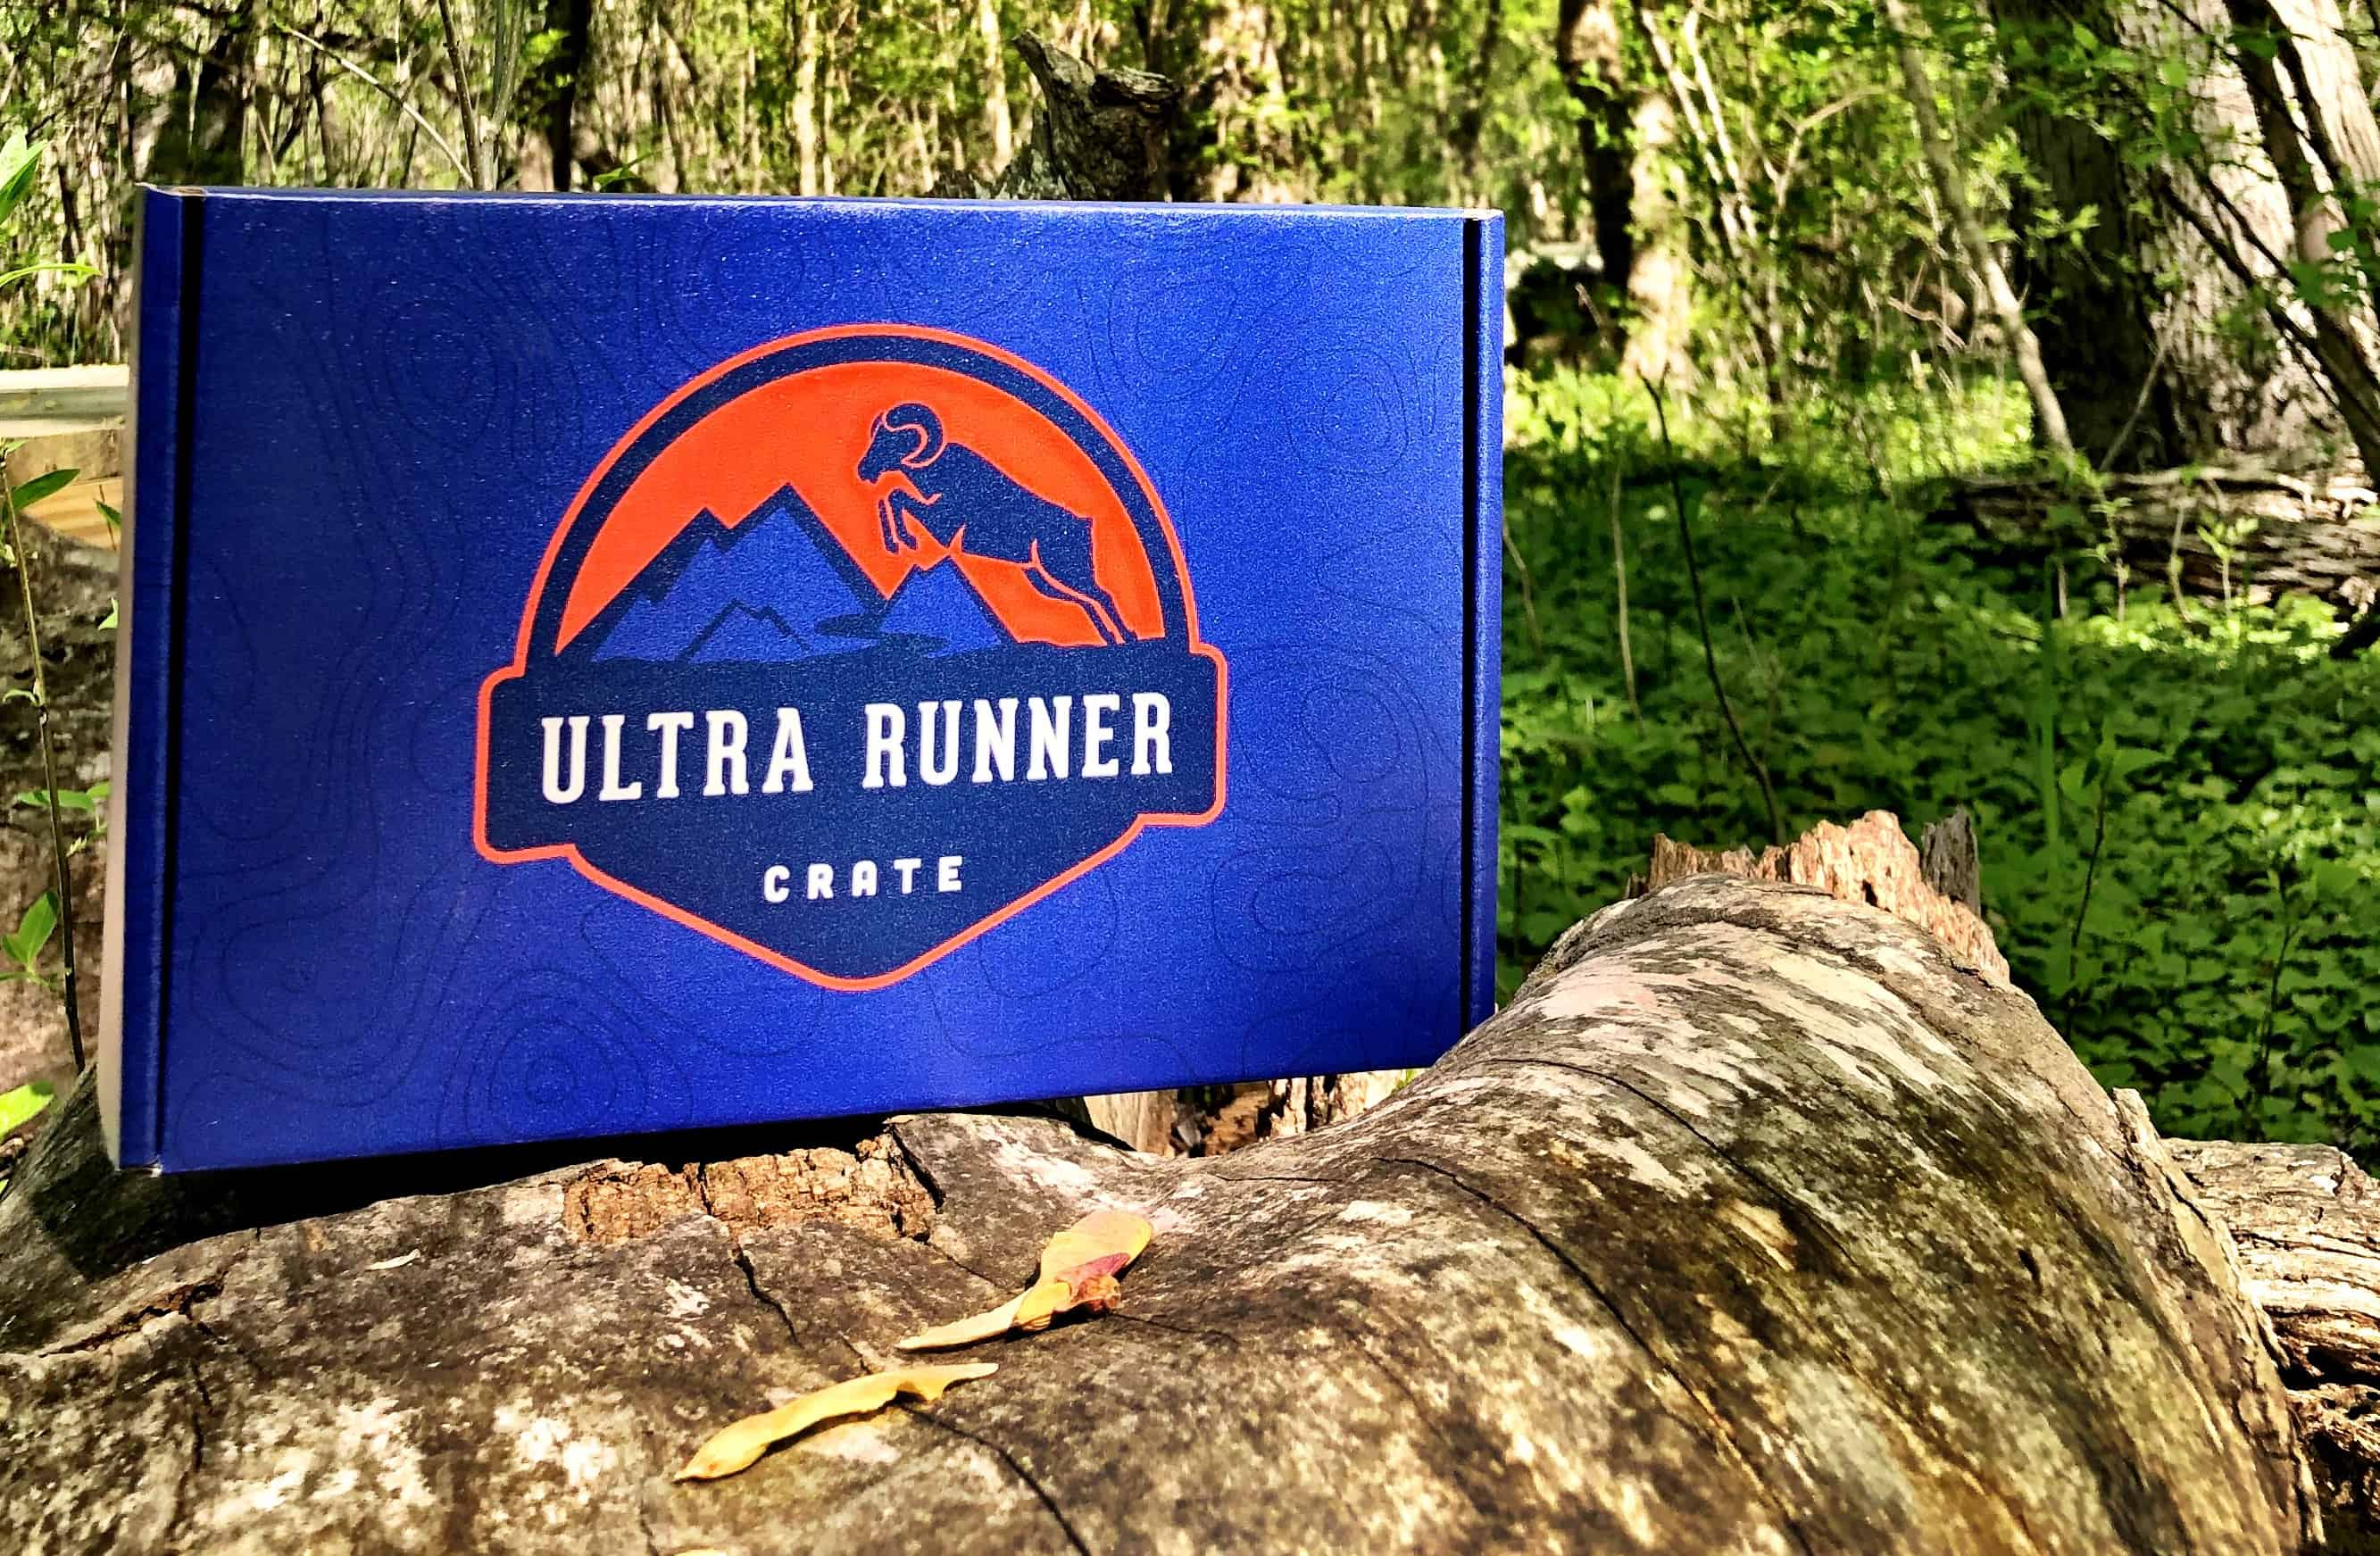 Ultrarunner Crate